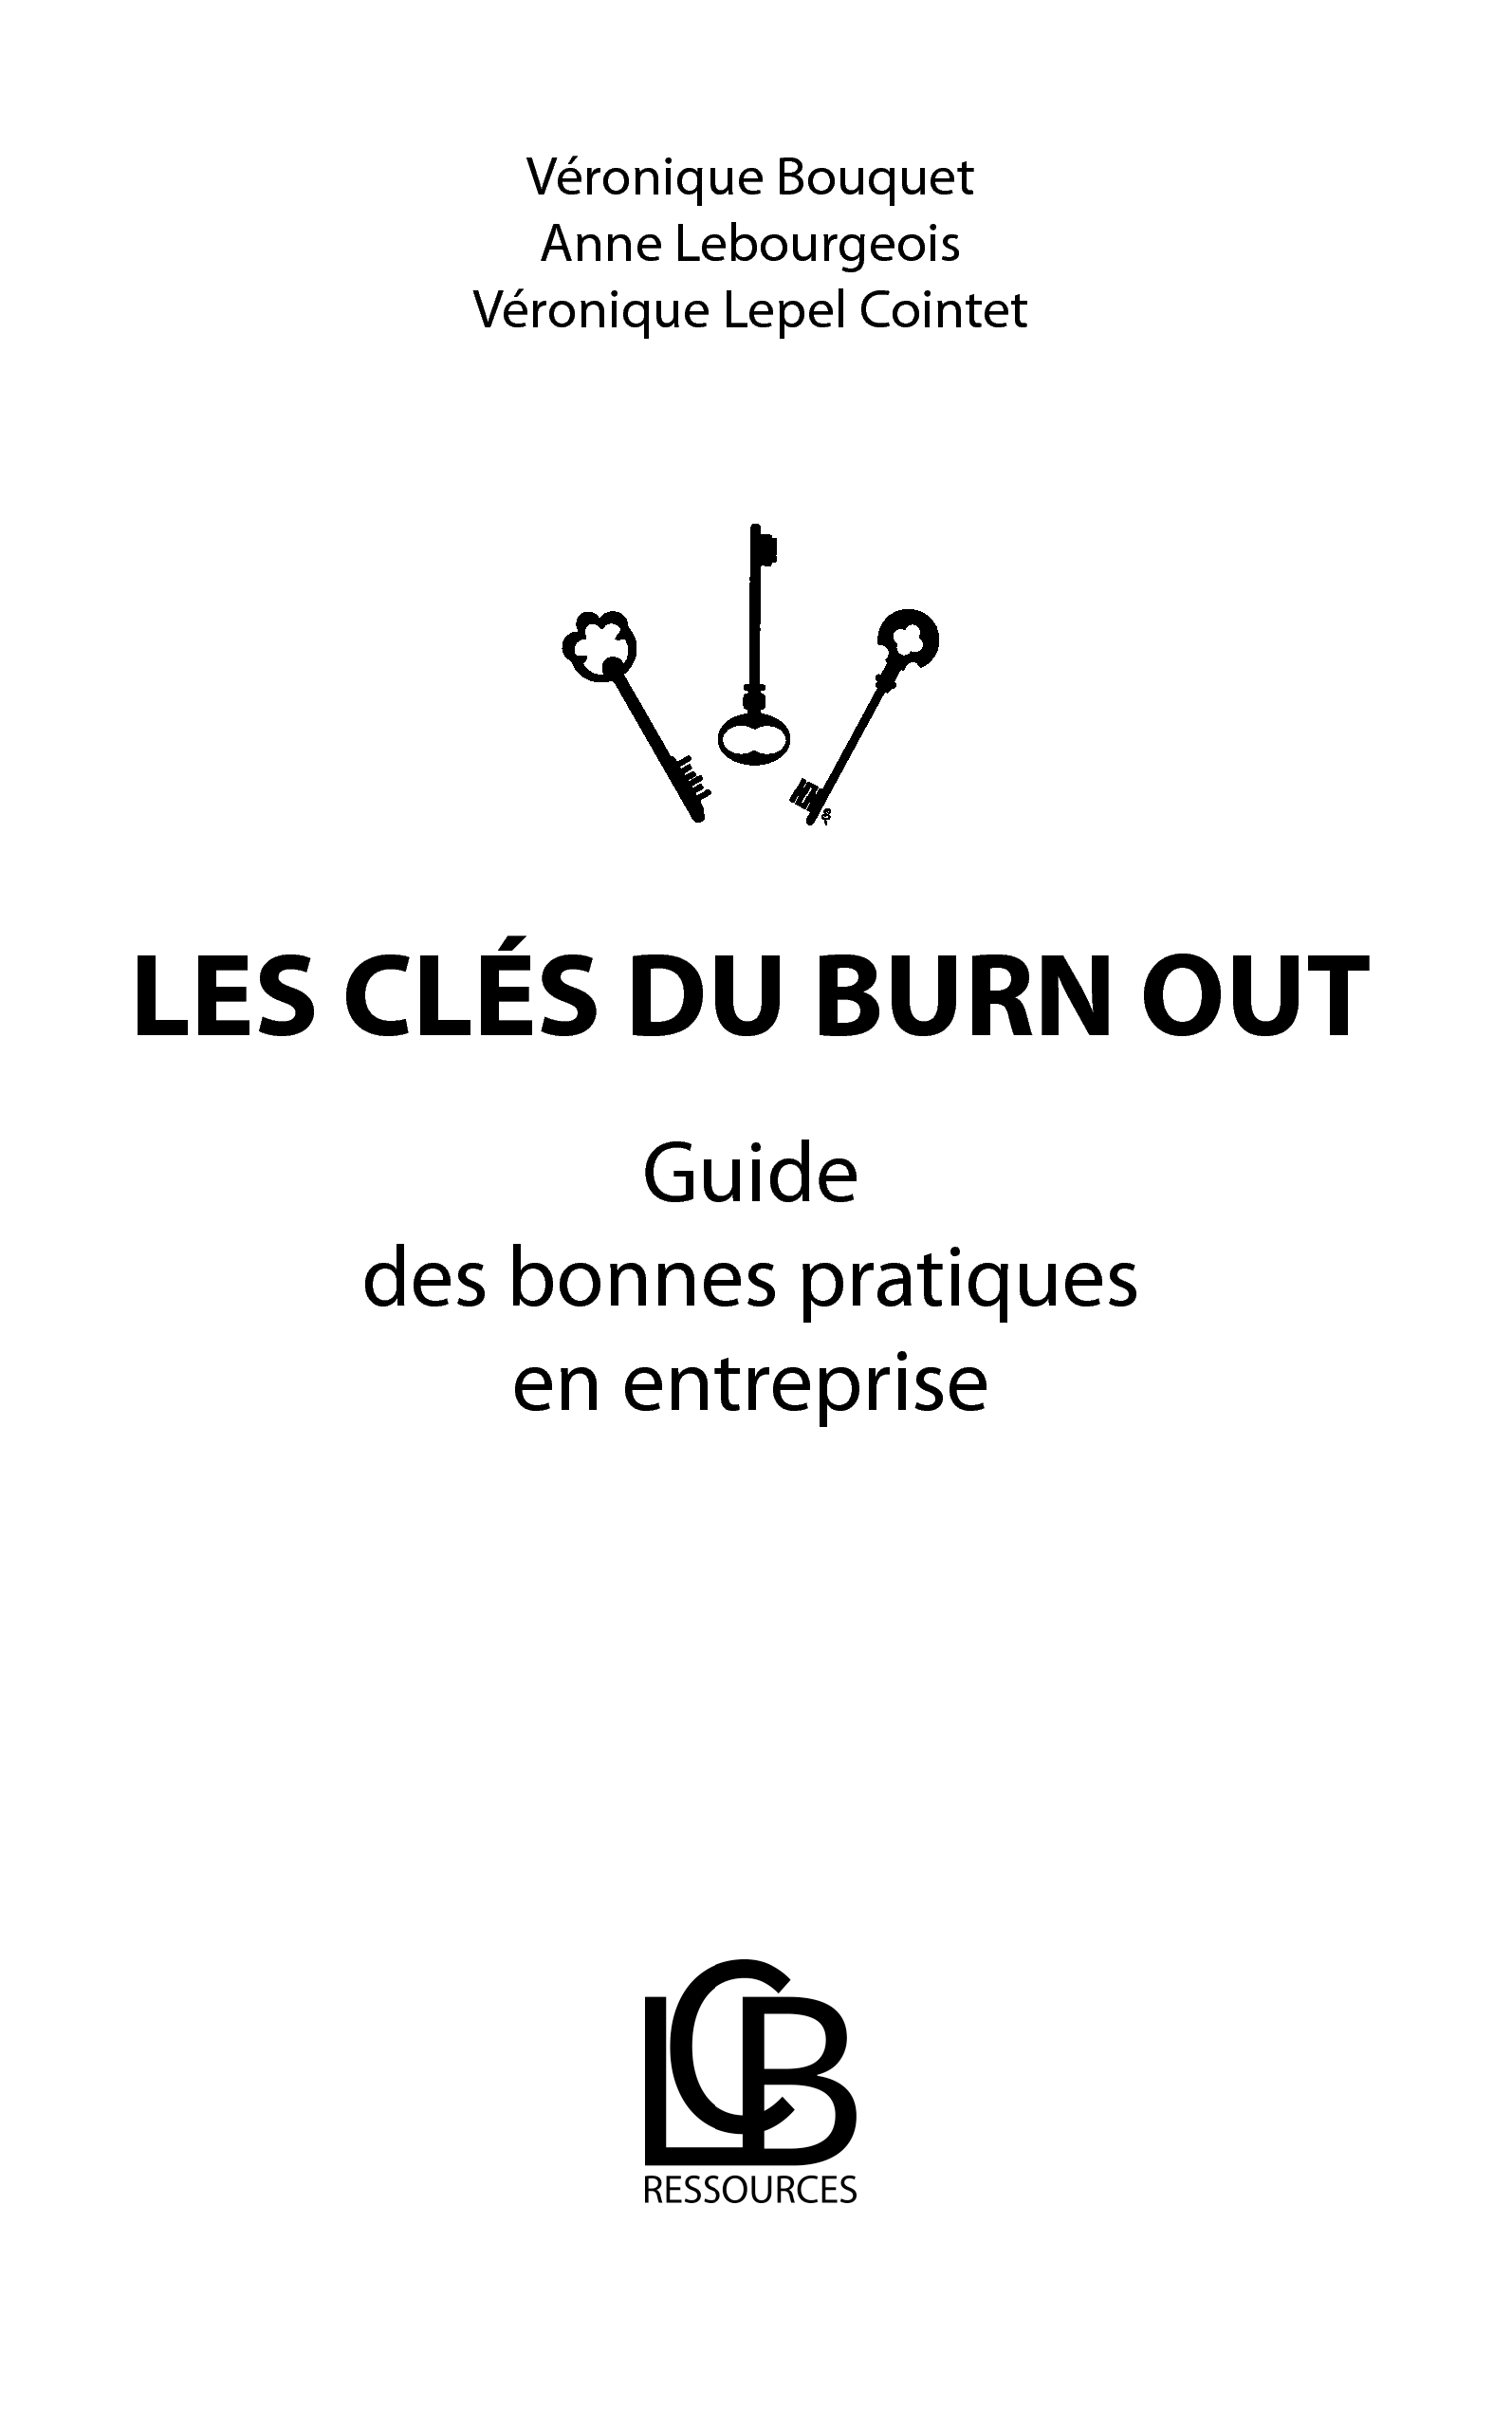 LES CLES DU BURN OUT